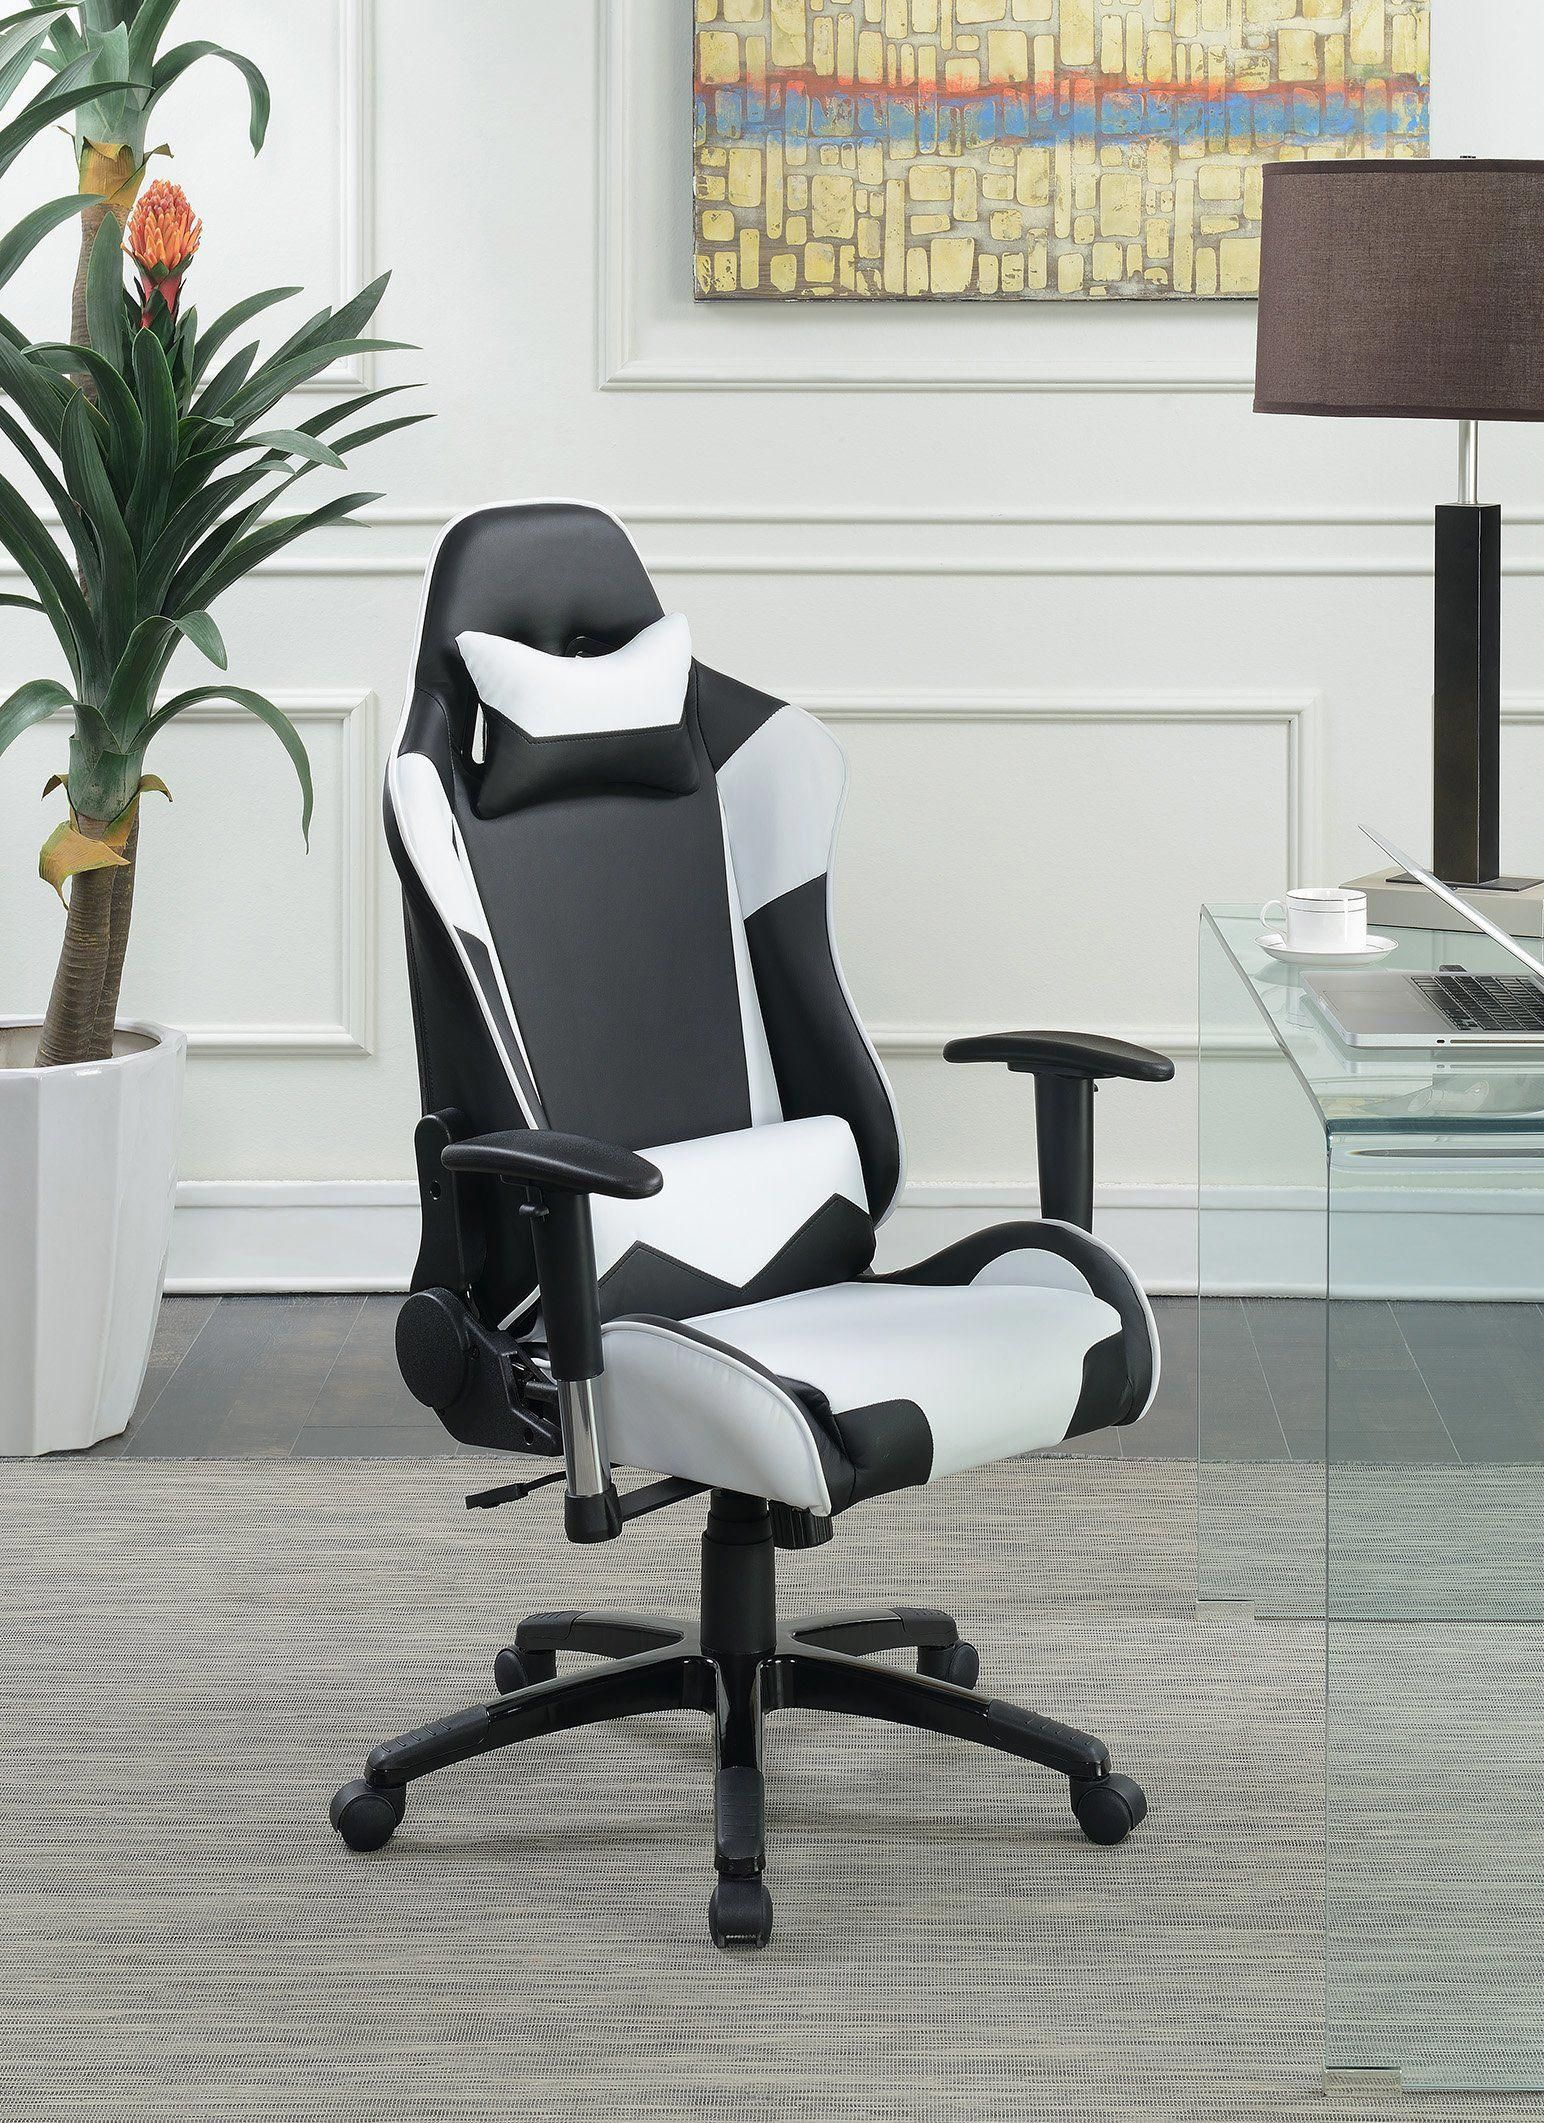 Peachy Black And White Computer Gaming Chair Computergames Inzonedesignstudio Interior Chair Design Inzonedesignstudiocom